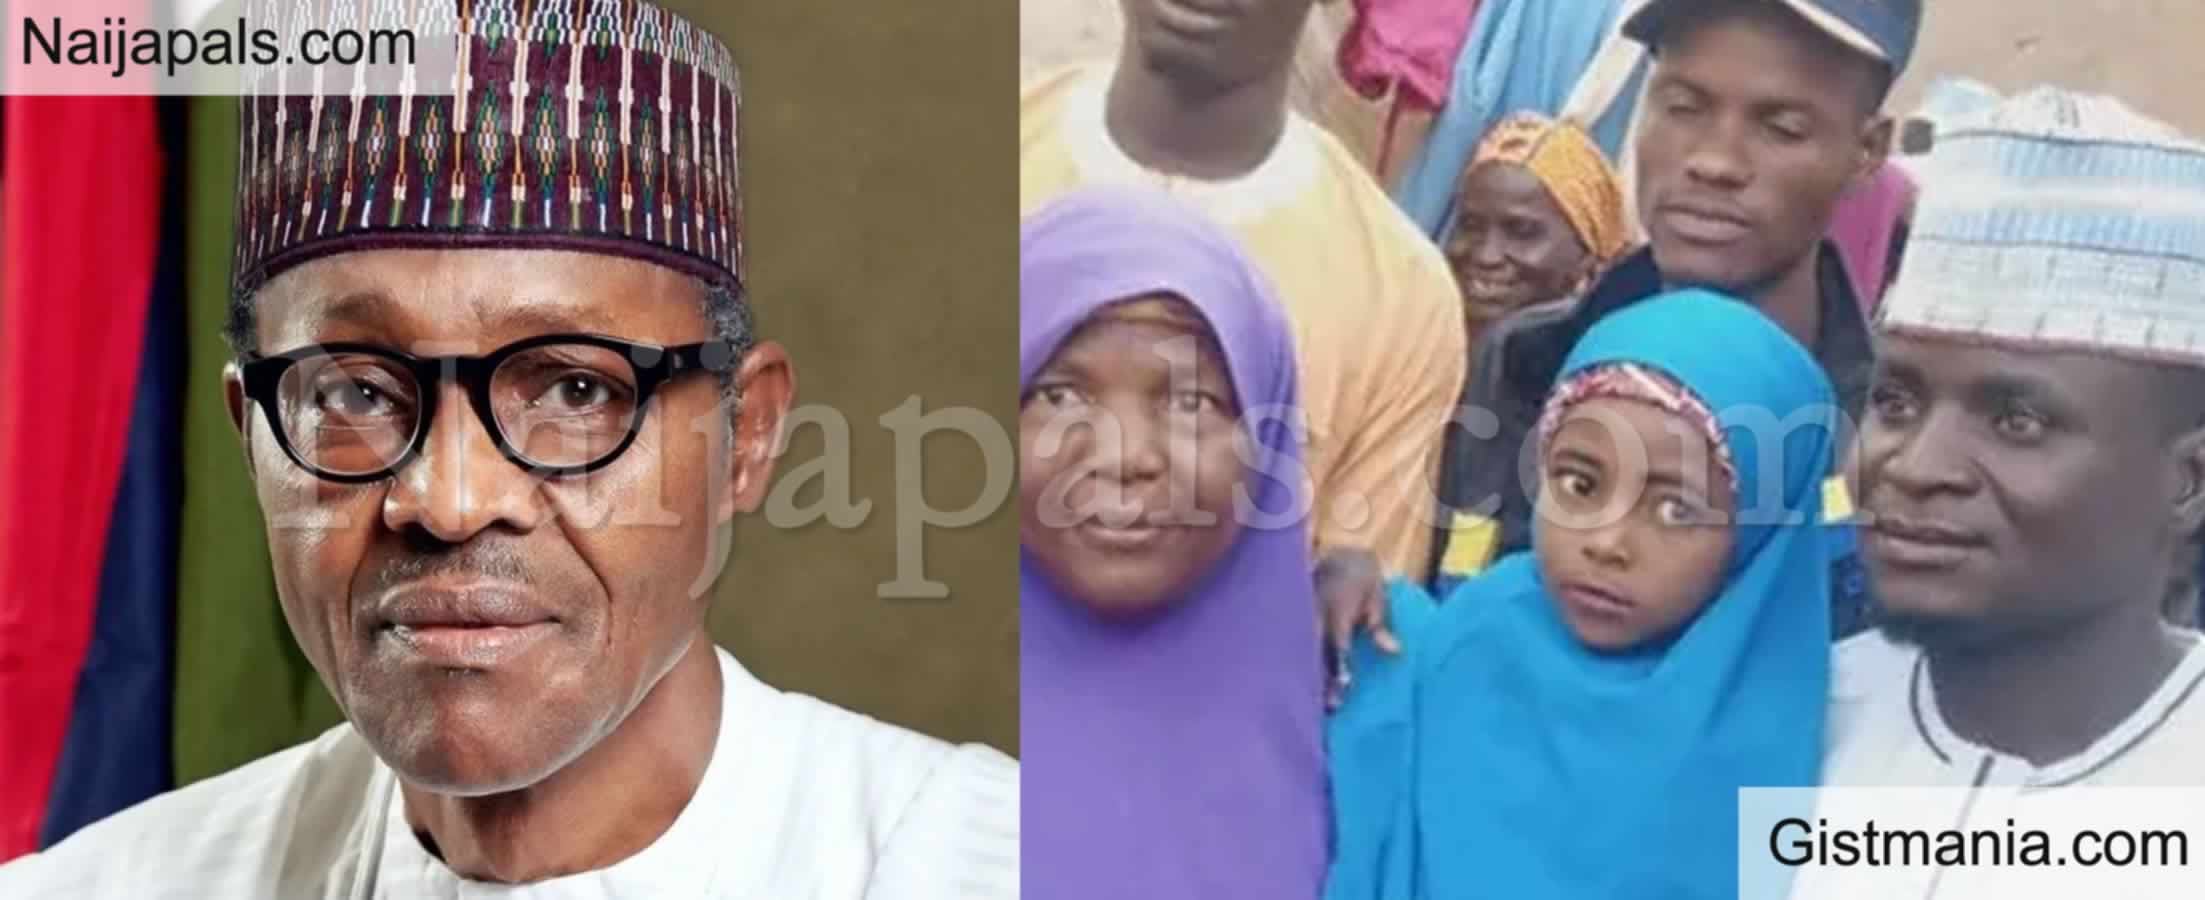 <img alt='.' class='lazyload' data-src='https://img.gistmania.com/emot/comment.gif' /> <b>Katsina Man Who Names His Daughter After Pre. Buhari Changes Her Name Says He Has Failed</b>